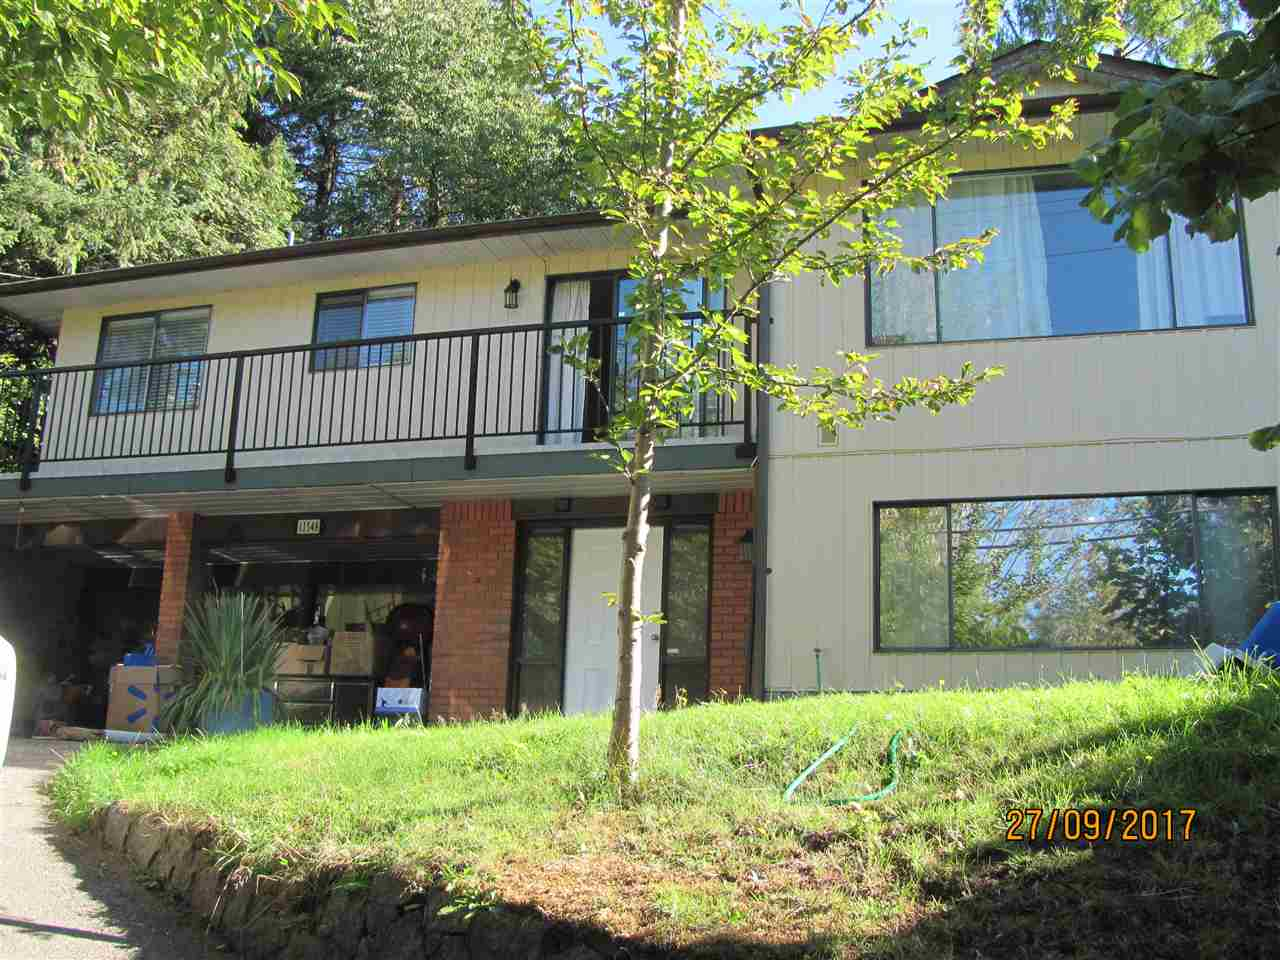 2-level spacious ground floor entry home in royal heights. On the top floor, 3 bedrooms, 2-piece ensuite bathroom and a wrap around deck from dining room to the kitchen with access to the back yard. On the ground floor, a large recreation/family room 26x11, summer kitchen, 3-piece bathroom and a storage room; can convert to an inlaw suite. 2 wood burning fireplaces. Fenced back yard; great for kids and pets. Close to Royal heights elementary. potential view if trees in front are cut down. 2-car carport. House was renovated 5 years ago. Roof is 3 years old. Easy access to hiway 17 and 91; 25 mins drive to Richmond and New West. 10 min bus to Scott Road Skytrain stn. Excellent first home and investment property.